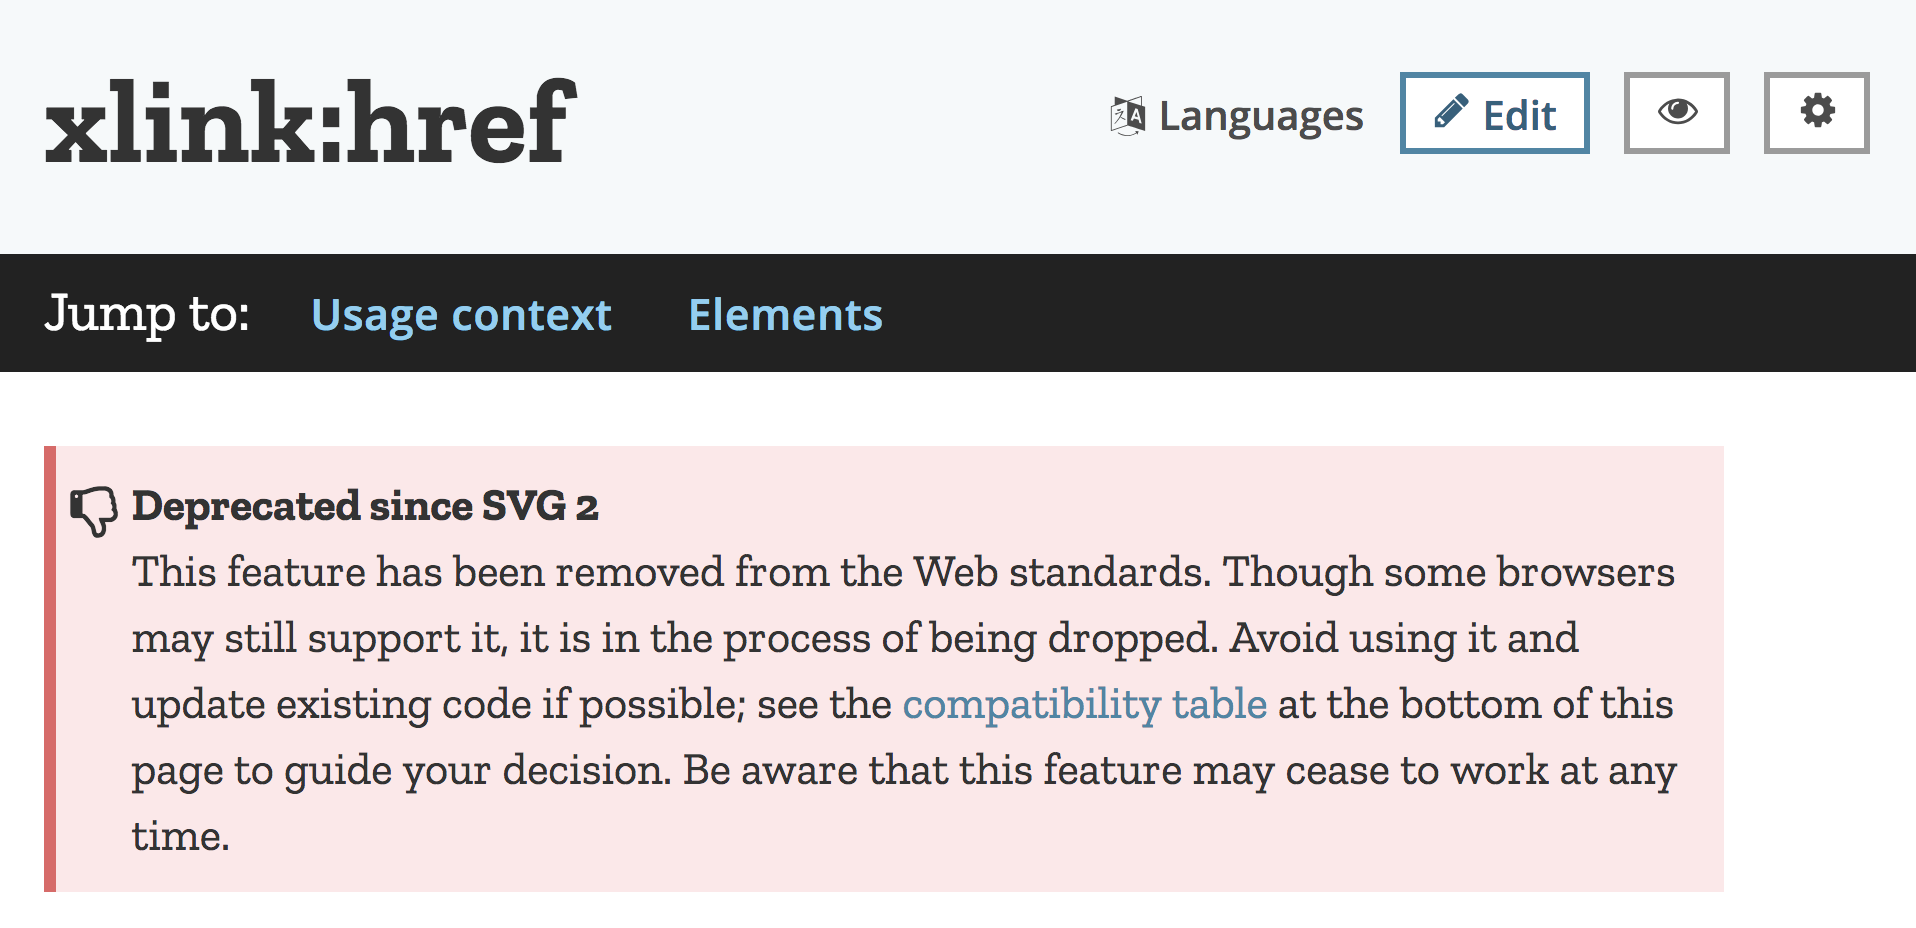 On xlink:href being deprecated in SVG